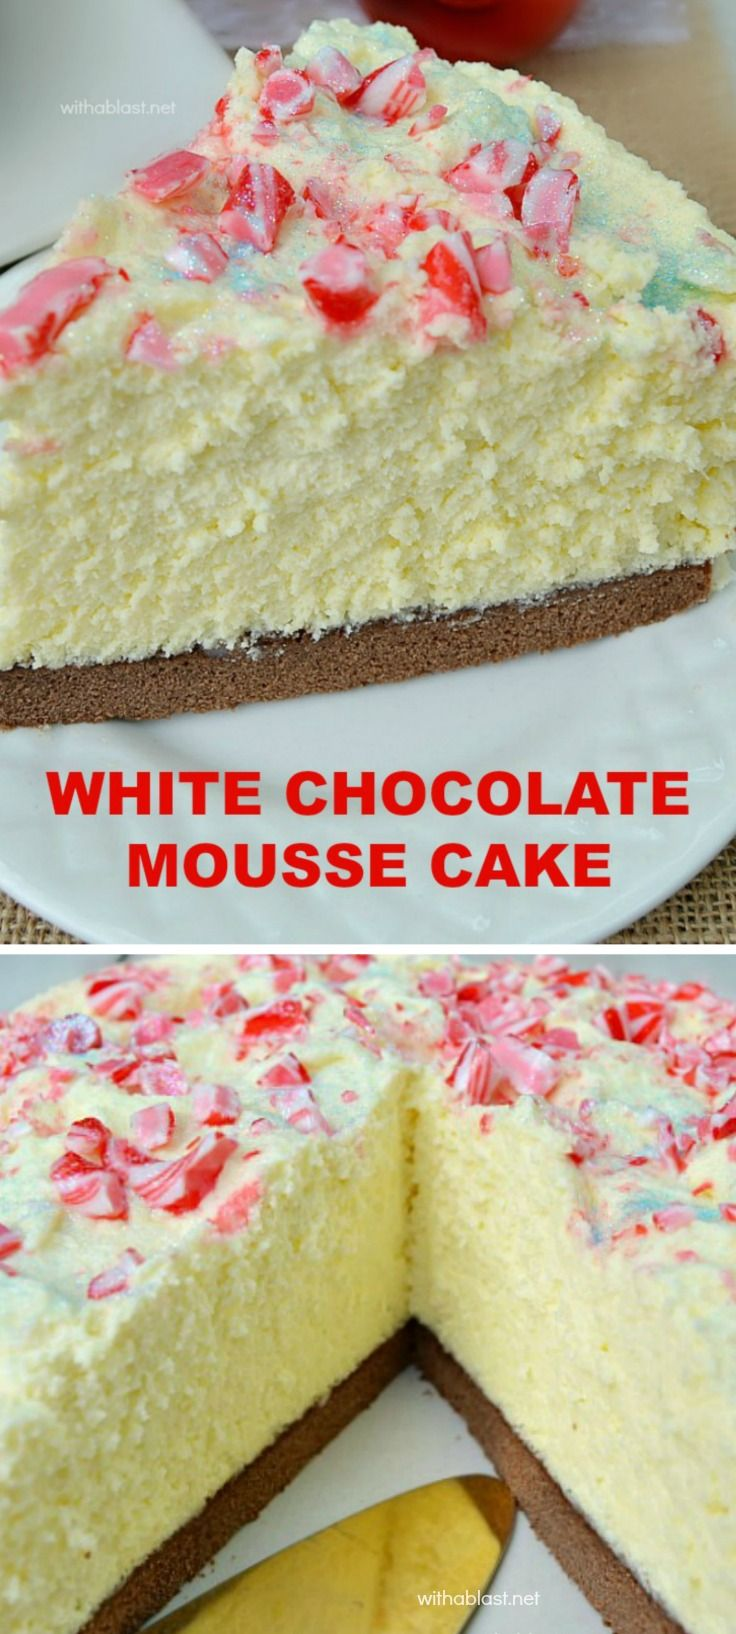 The BEST White Chocolate Mousse Cake EVER ! With a chewy Cake base, creamy Mousse and a taste which will blow you away ~ this is also a make-ahead recipe and yields 12 - 16 slices (use any topping to suit the occasion) Click image to find more popular food & drink Pinterest pins